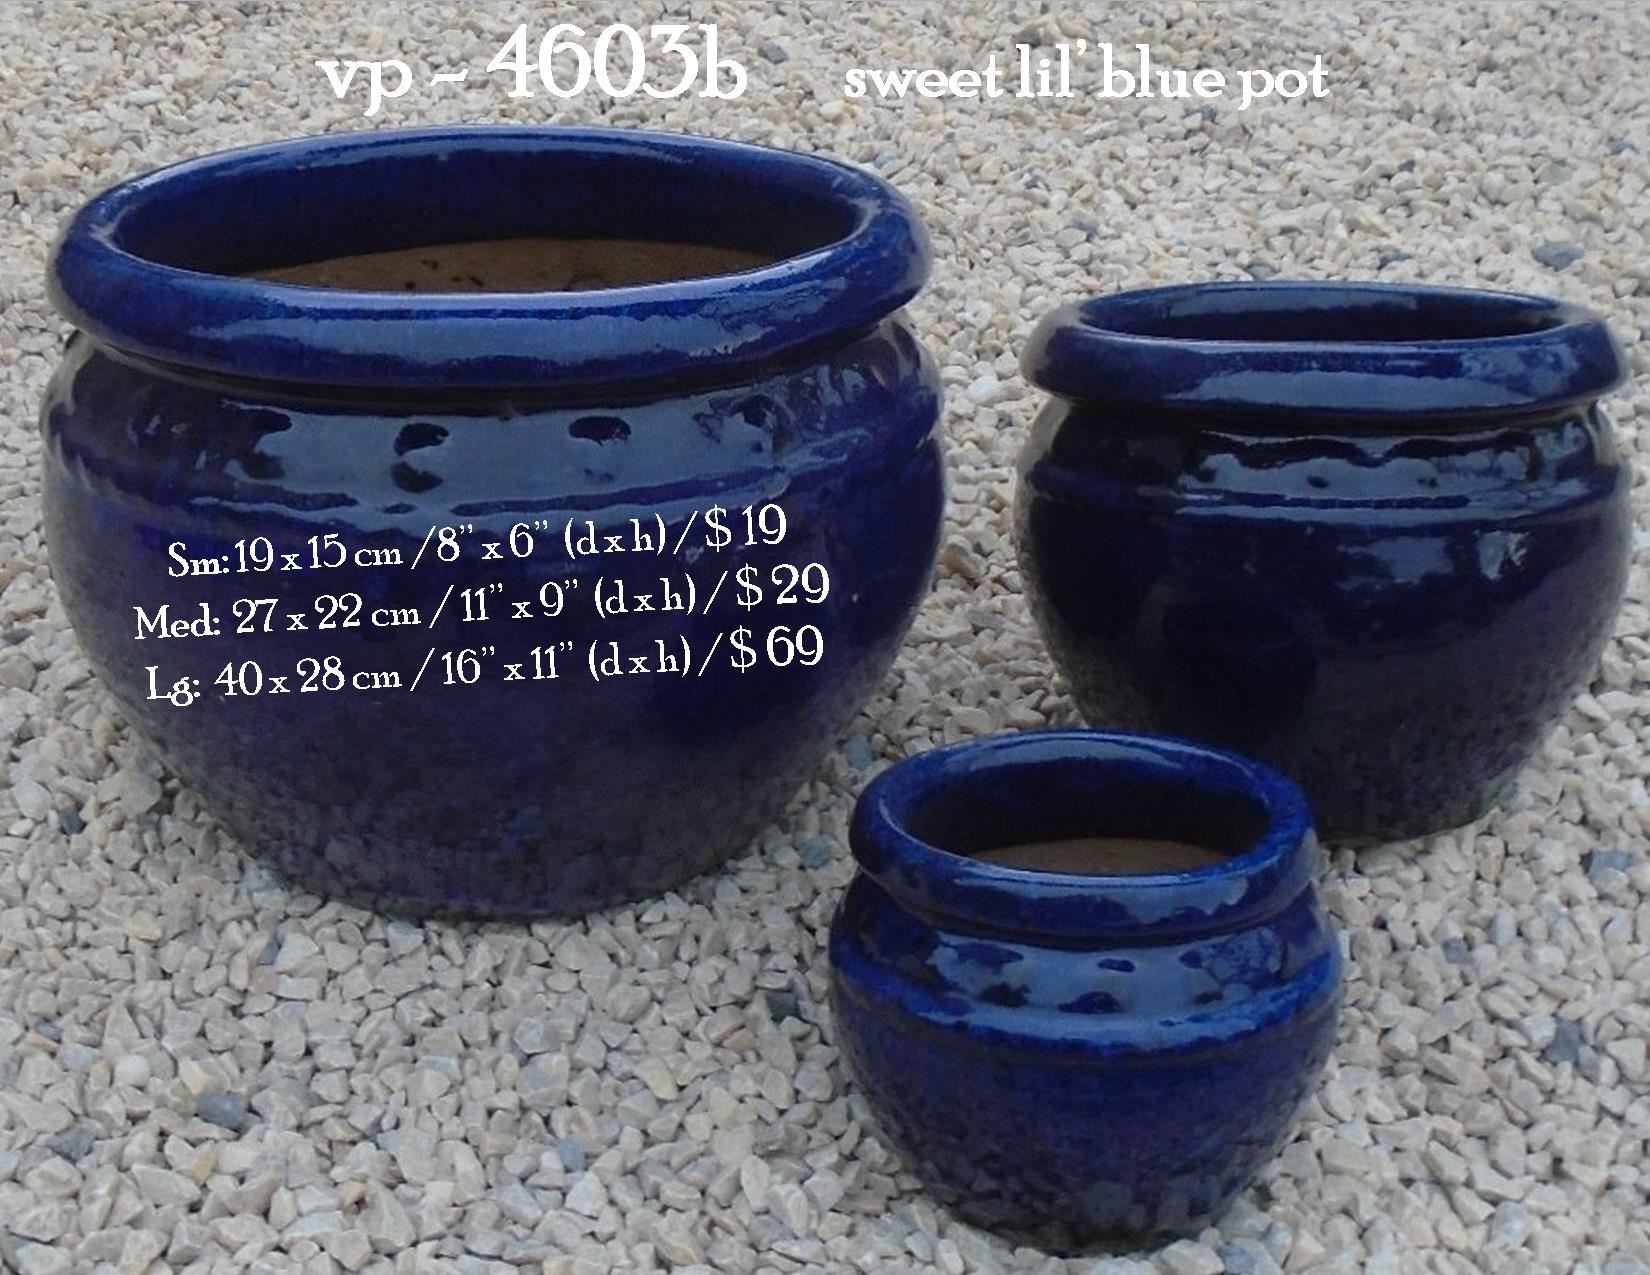 vp - 4603b      sweet little blue pot